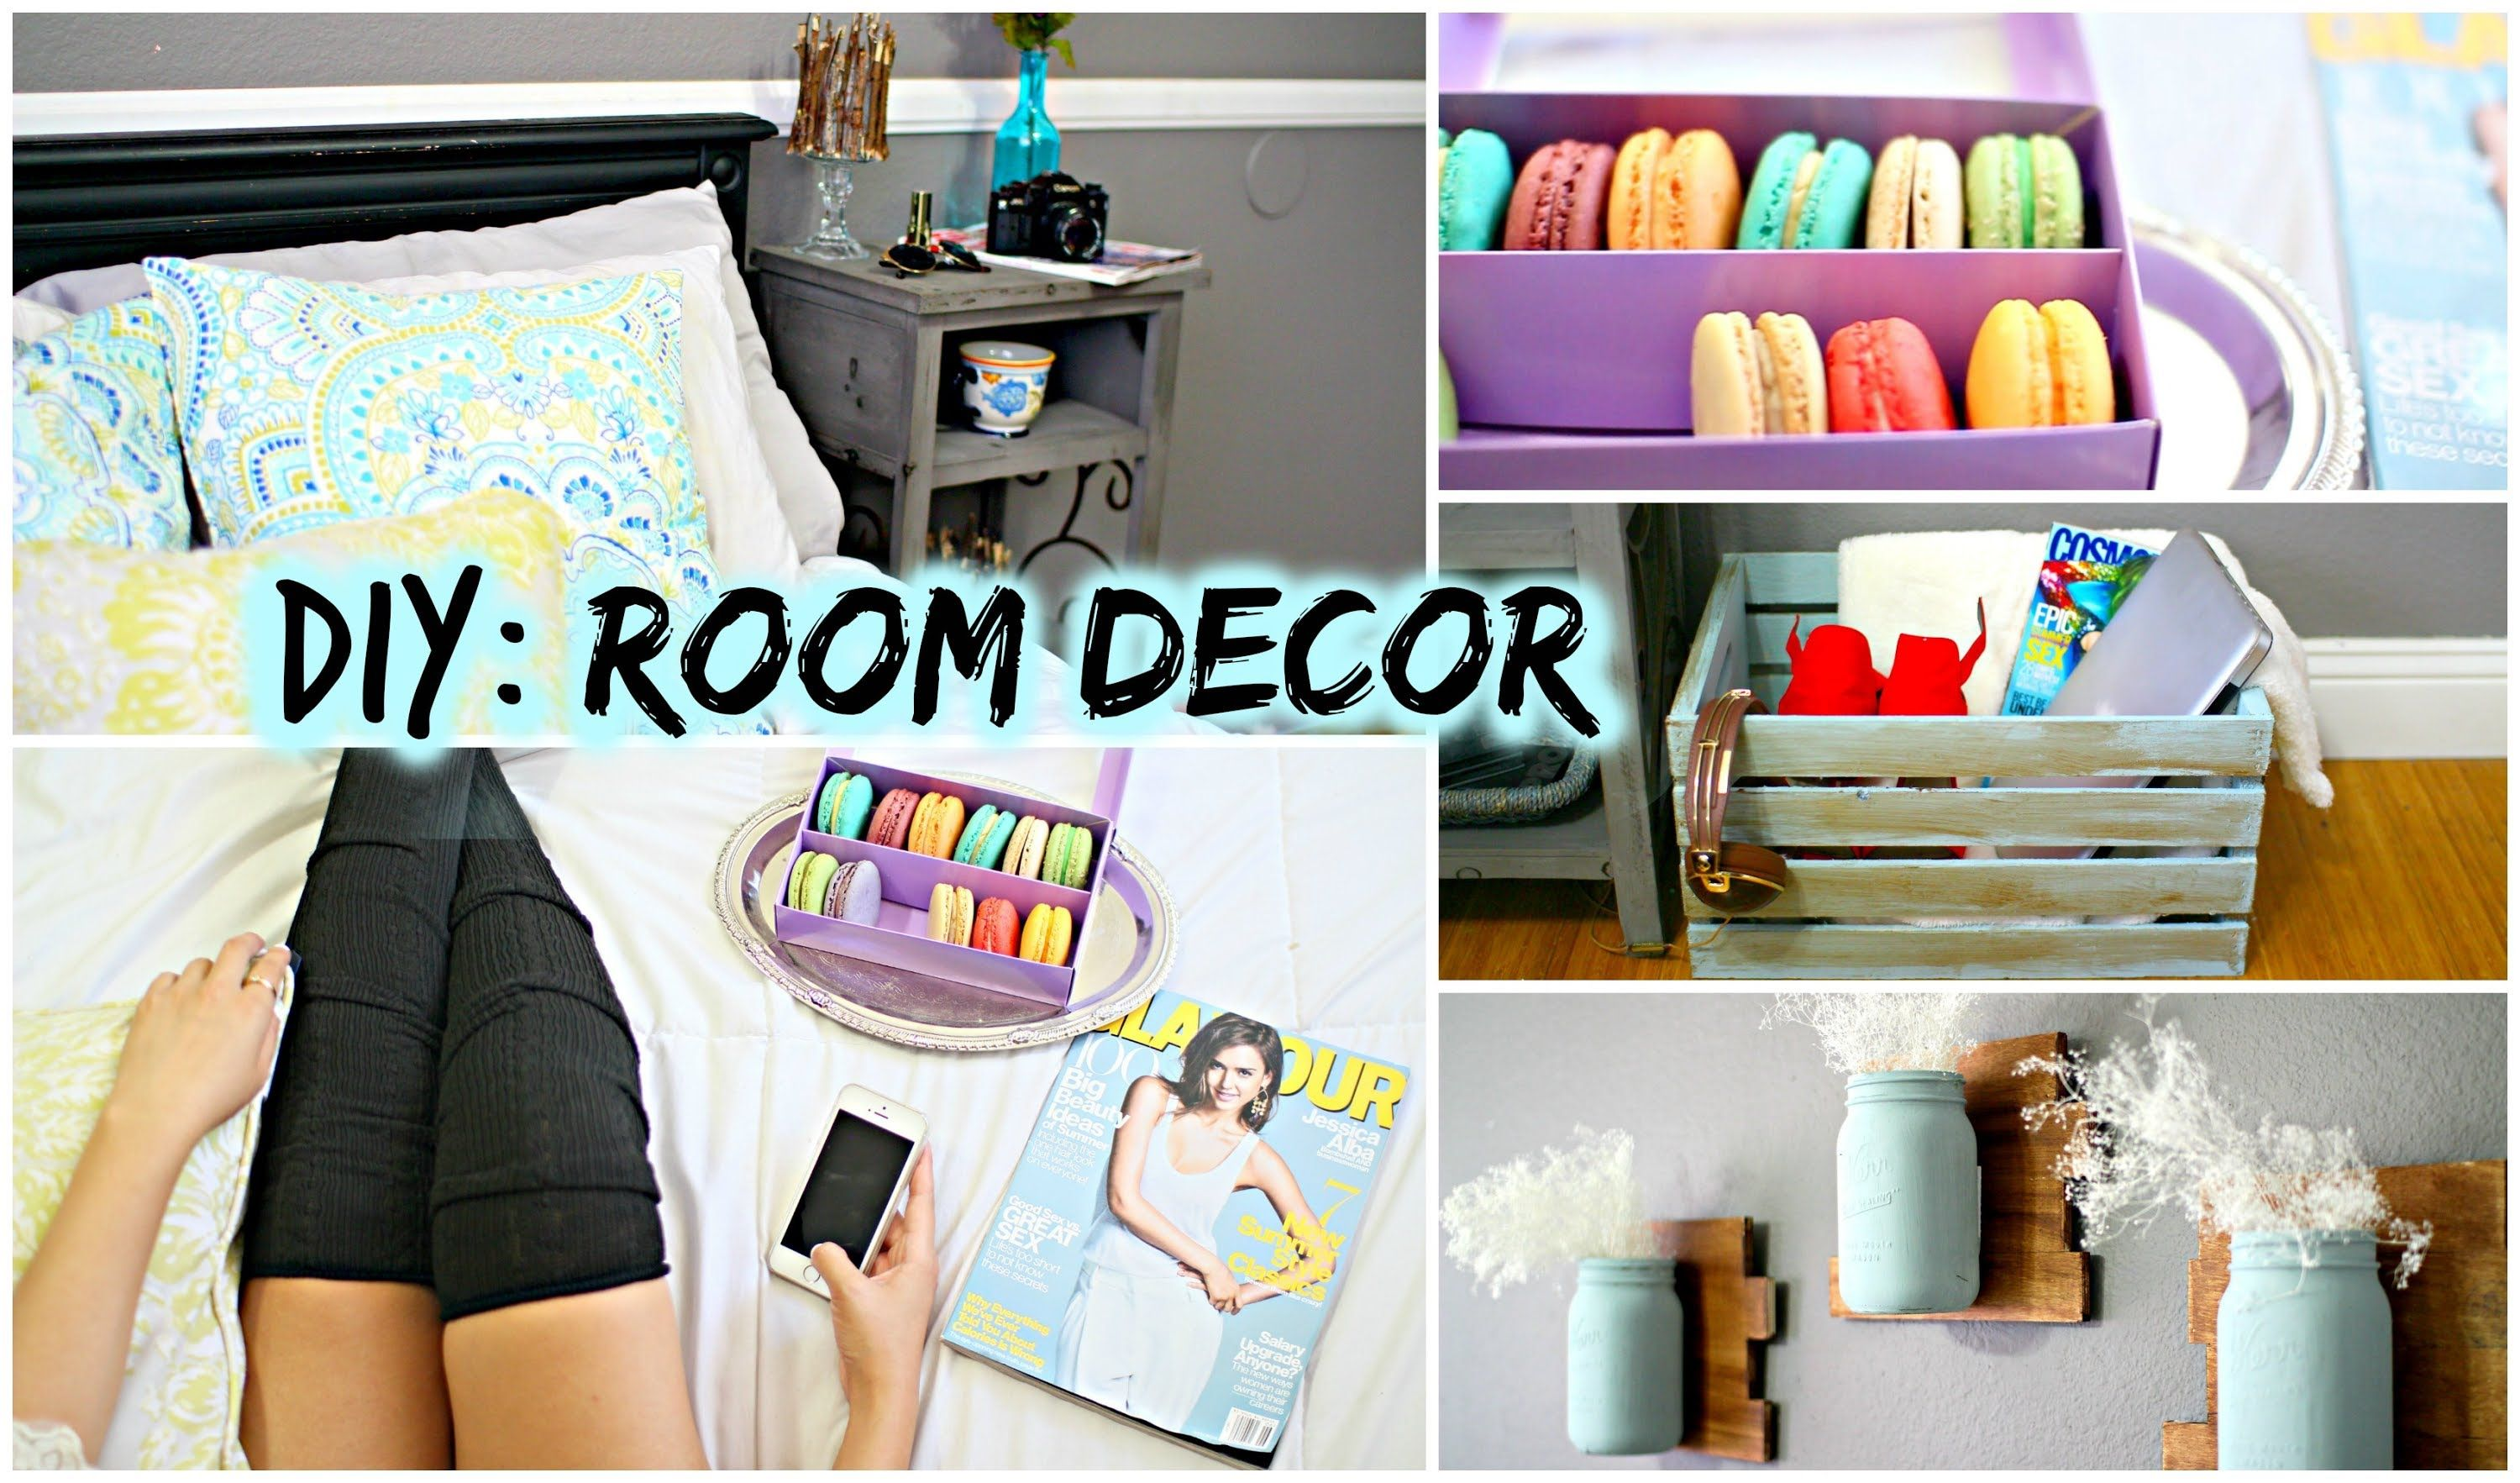 Easy diy arts and crafts ideas check out the image by visiting the link